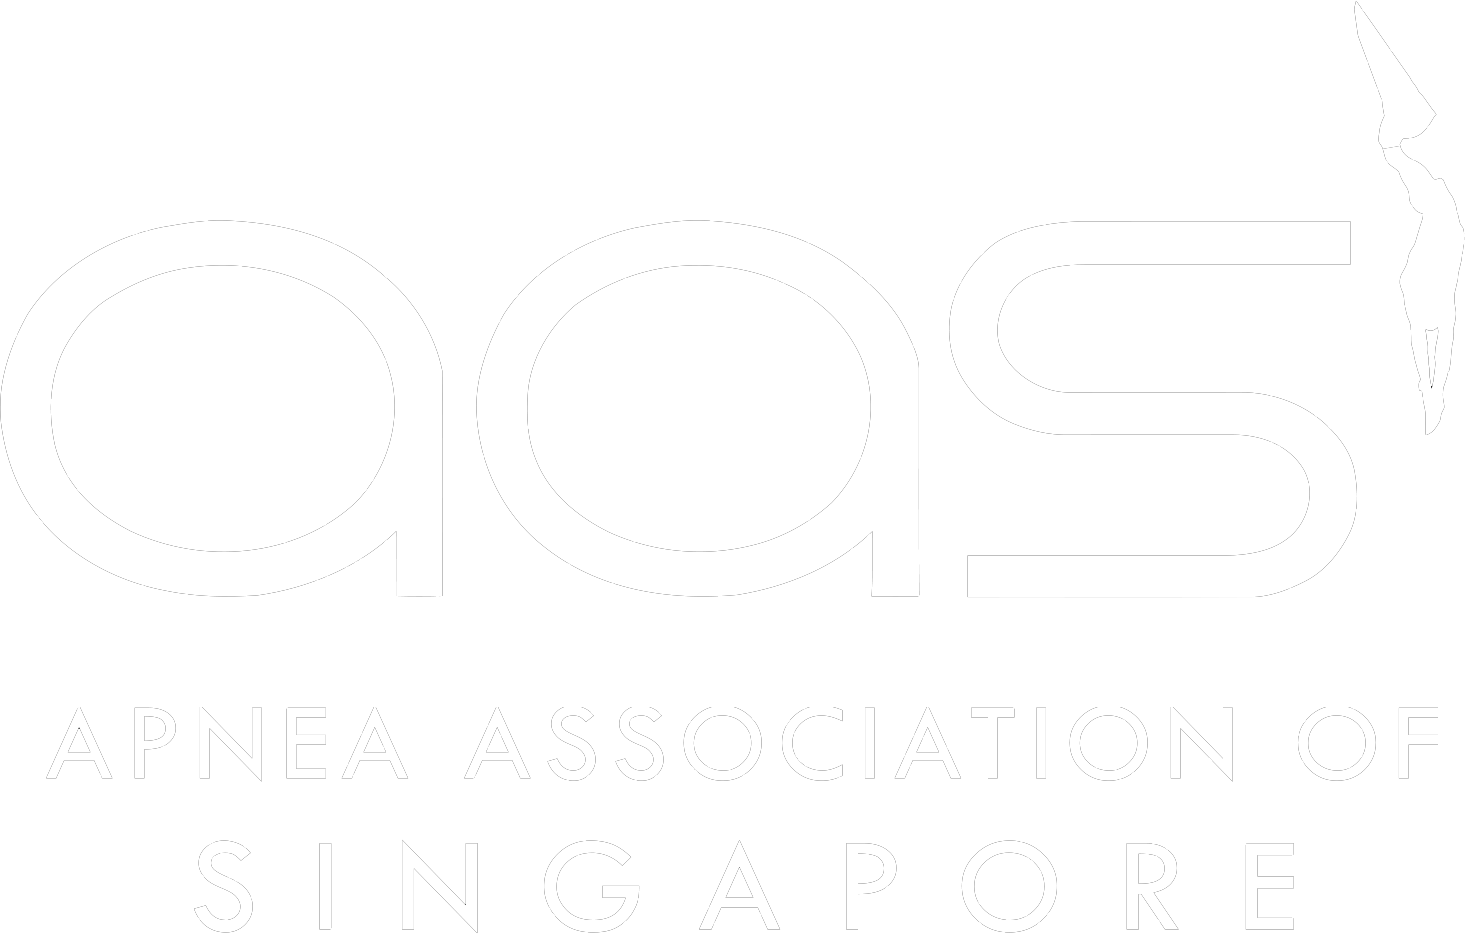 Apnea Association of Singapore